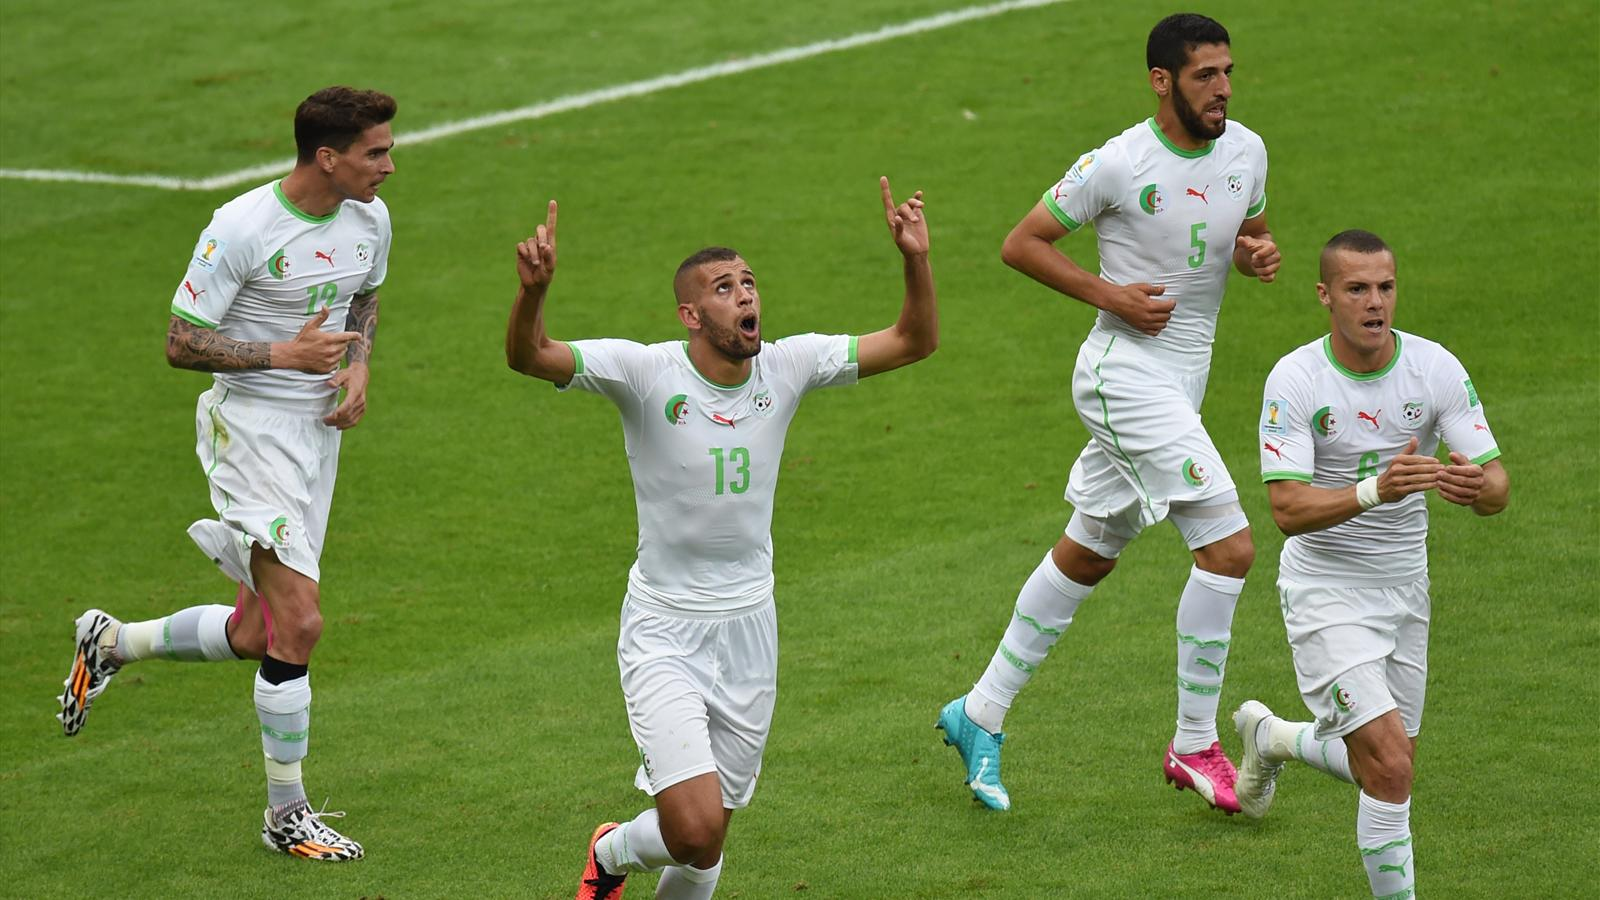 Match Algerie Ethipie en direct live streaming